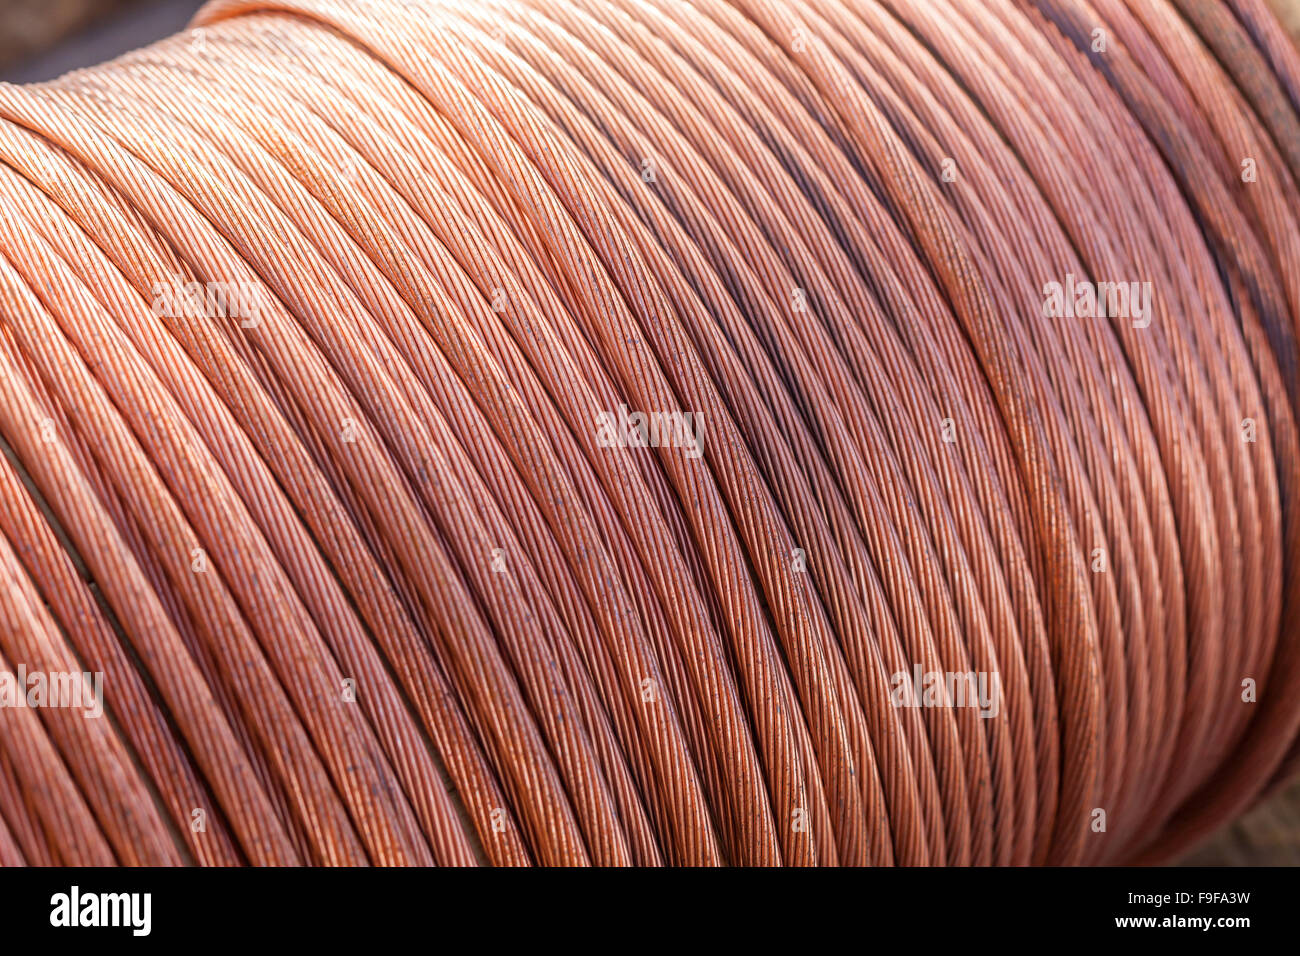 Spools Of Copper Electrical Wire Office Visio For Mac Mile 14gauge Galvanized Electric Fence Wire317774a The Home Depot Cable Stock Photos Images Alamy Large Horizontal Shot